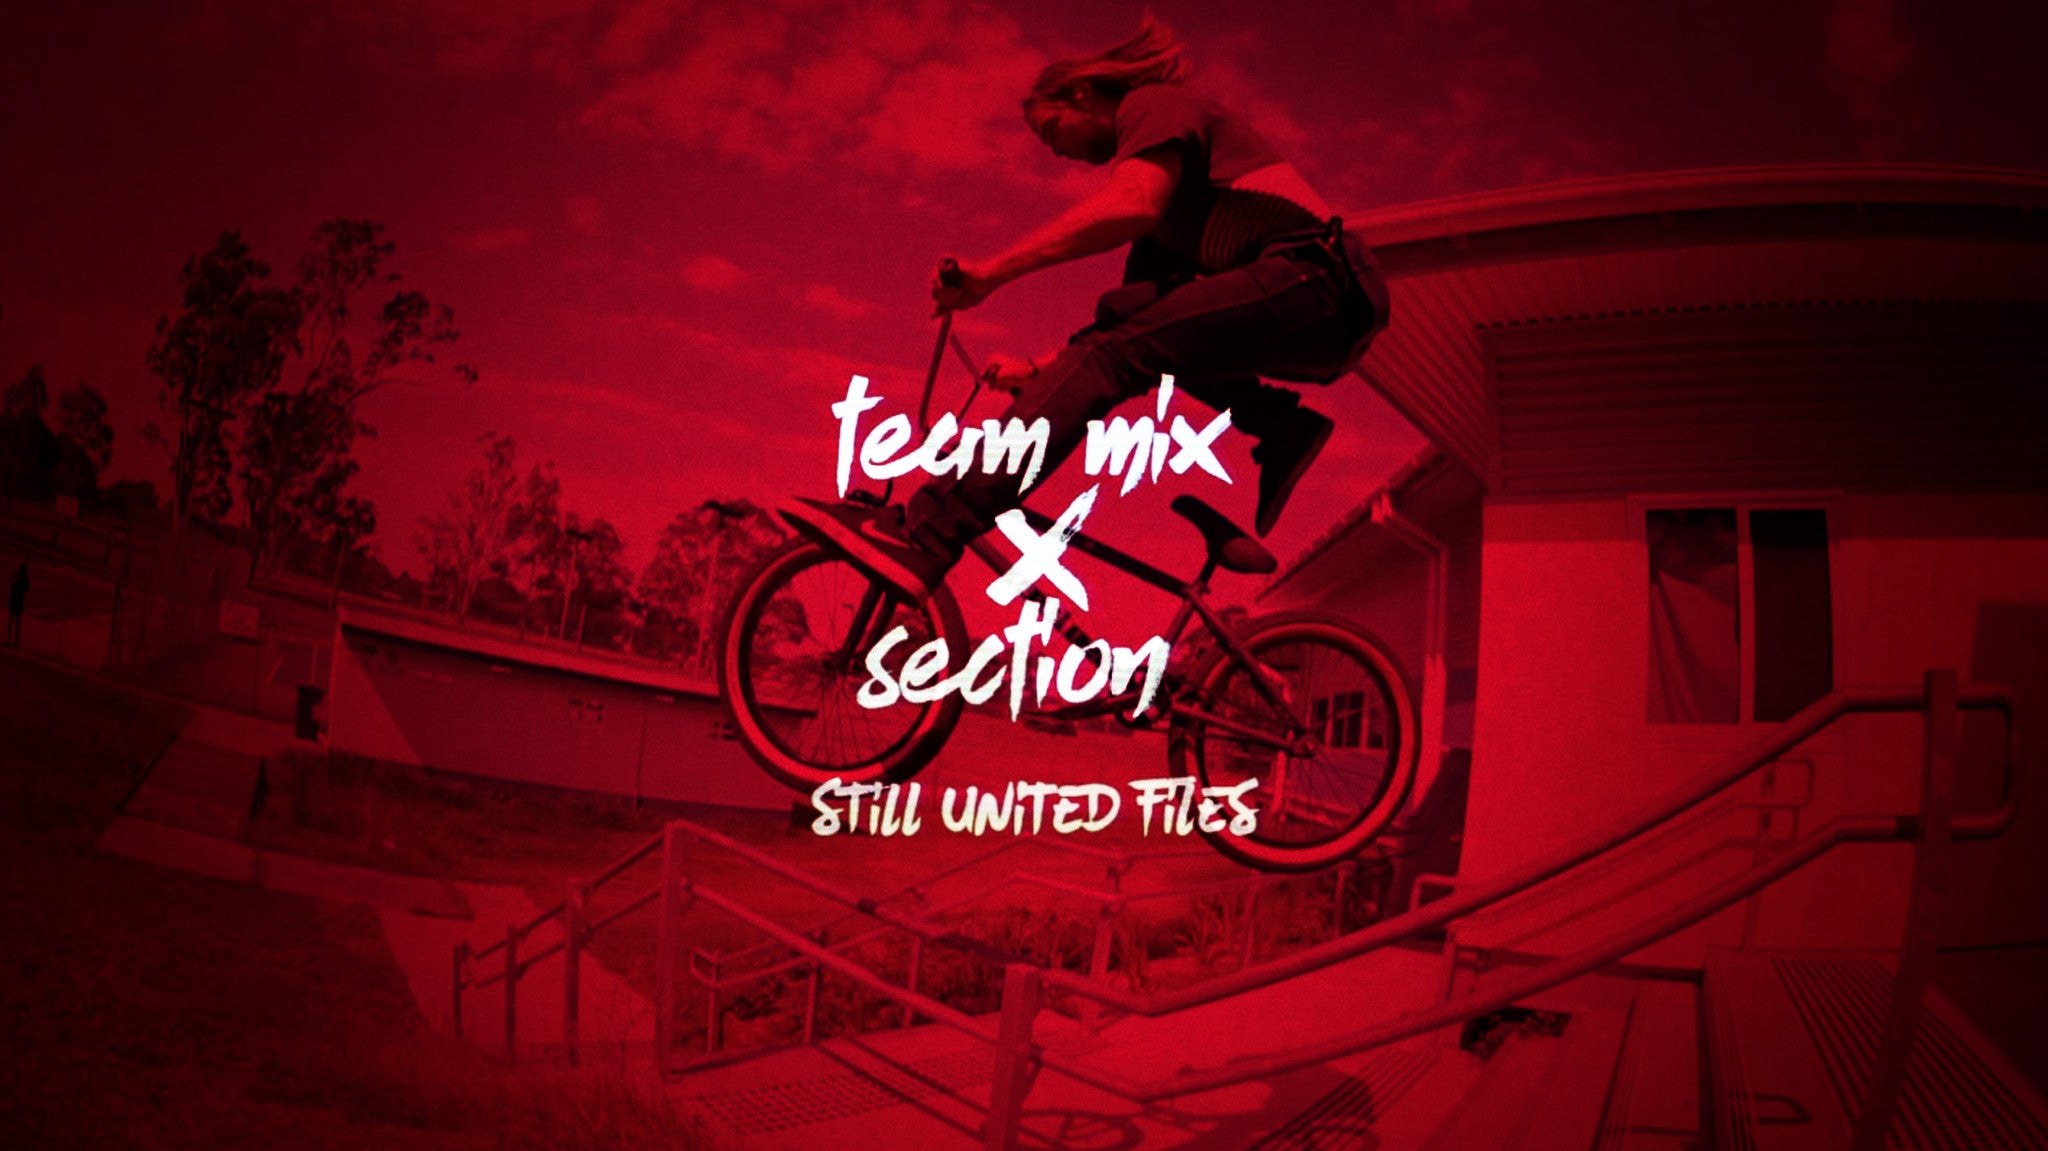 Still United Files - Team Mix